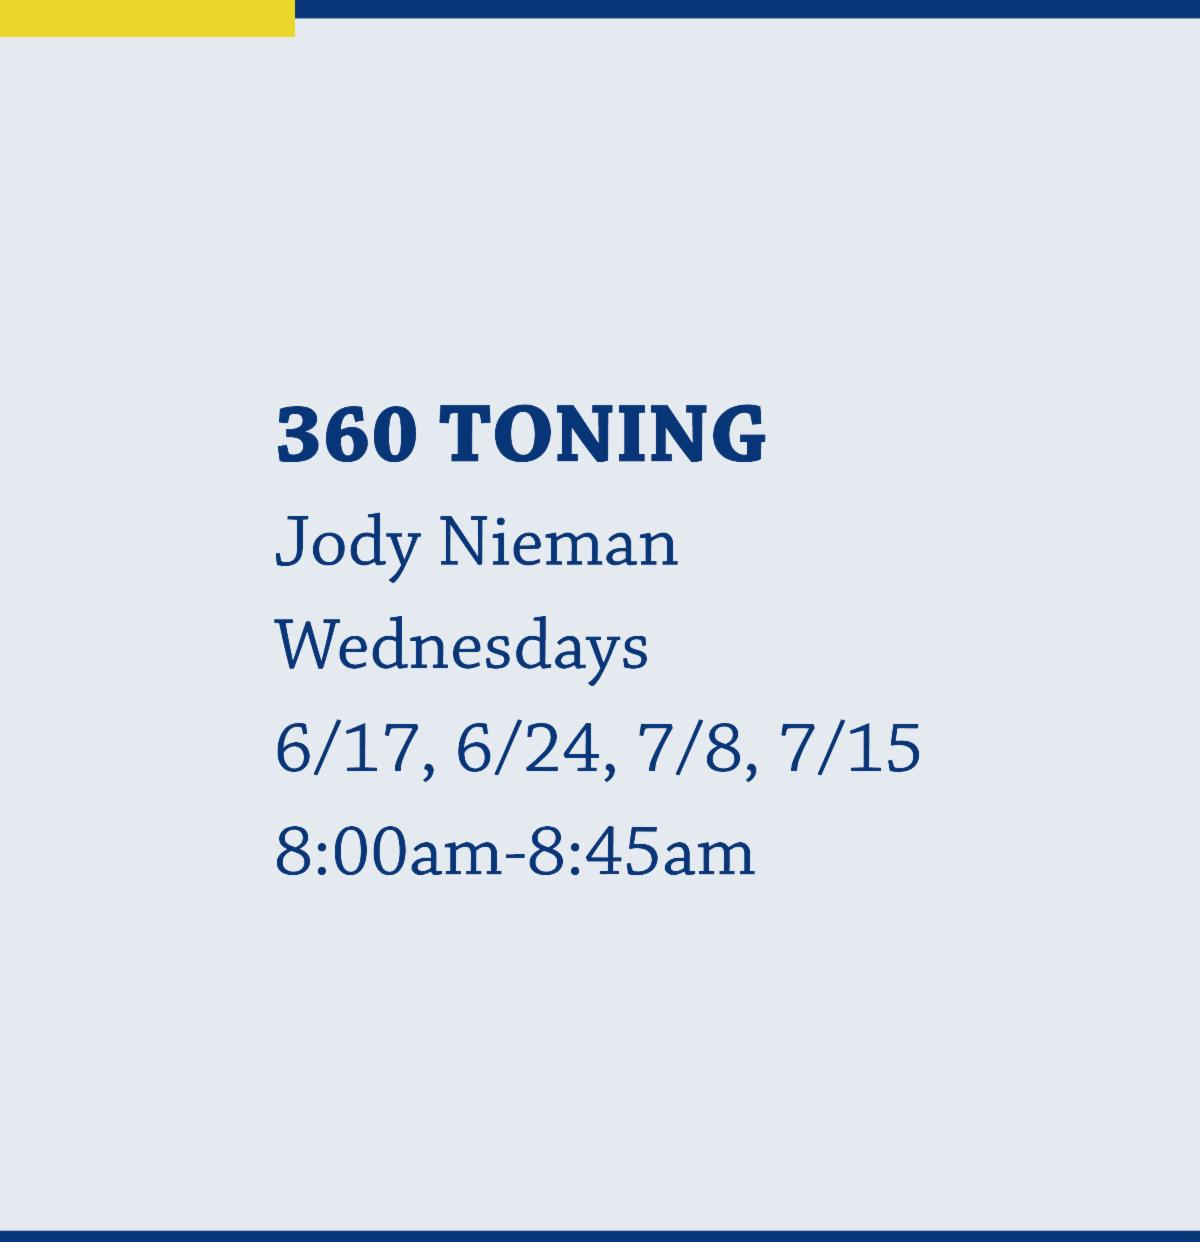 360 Toning with Jody Nieman on Wednesdays from 8:00am-8:45am